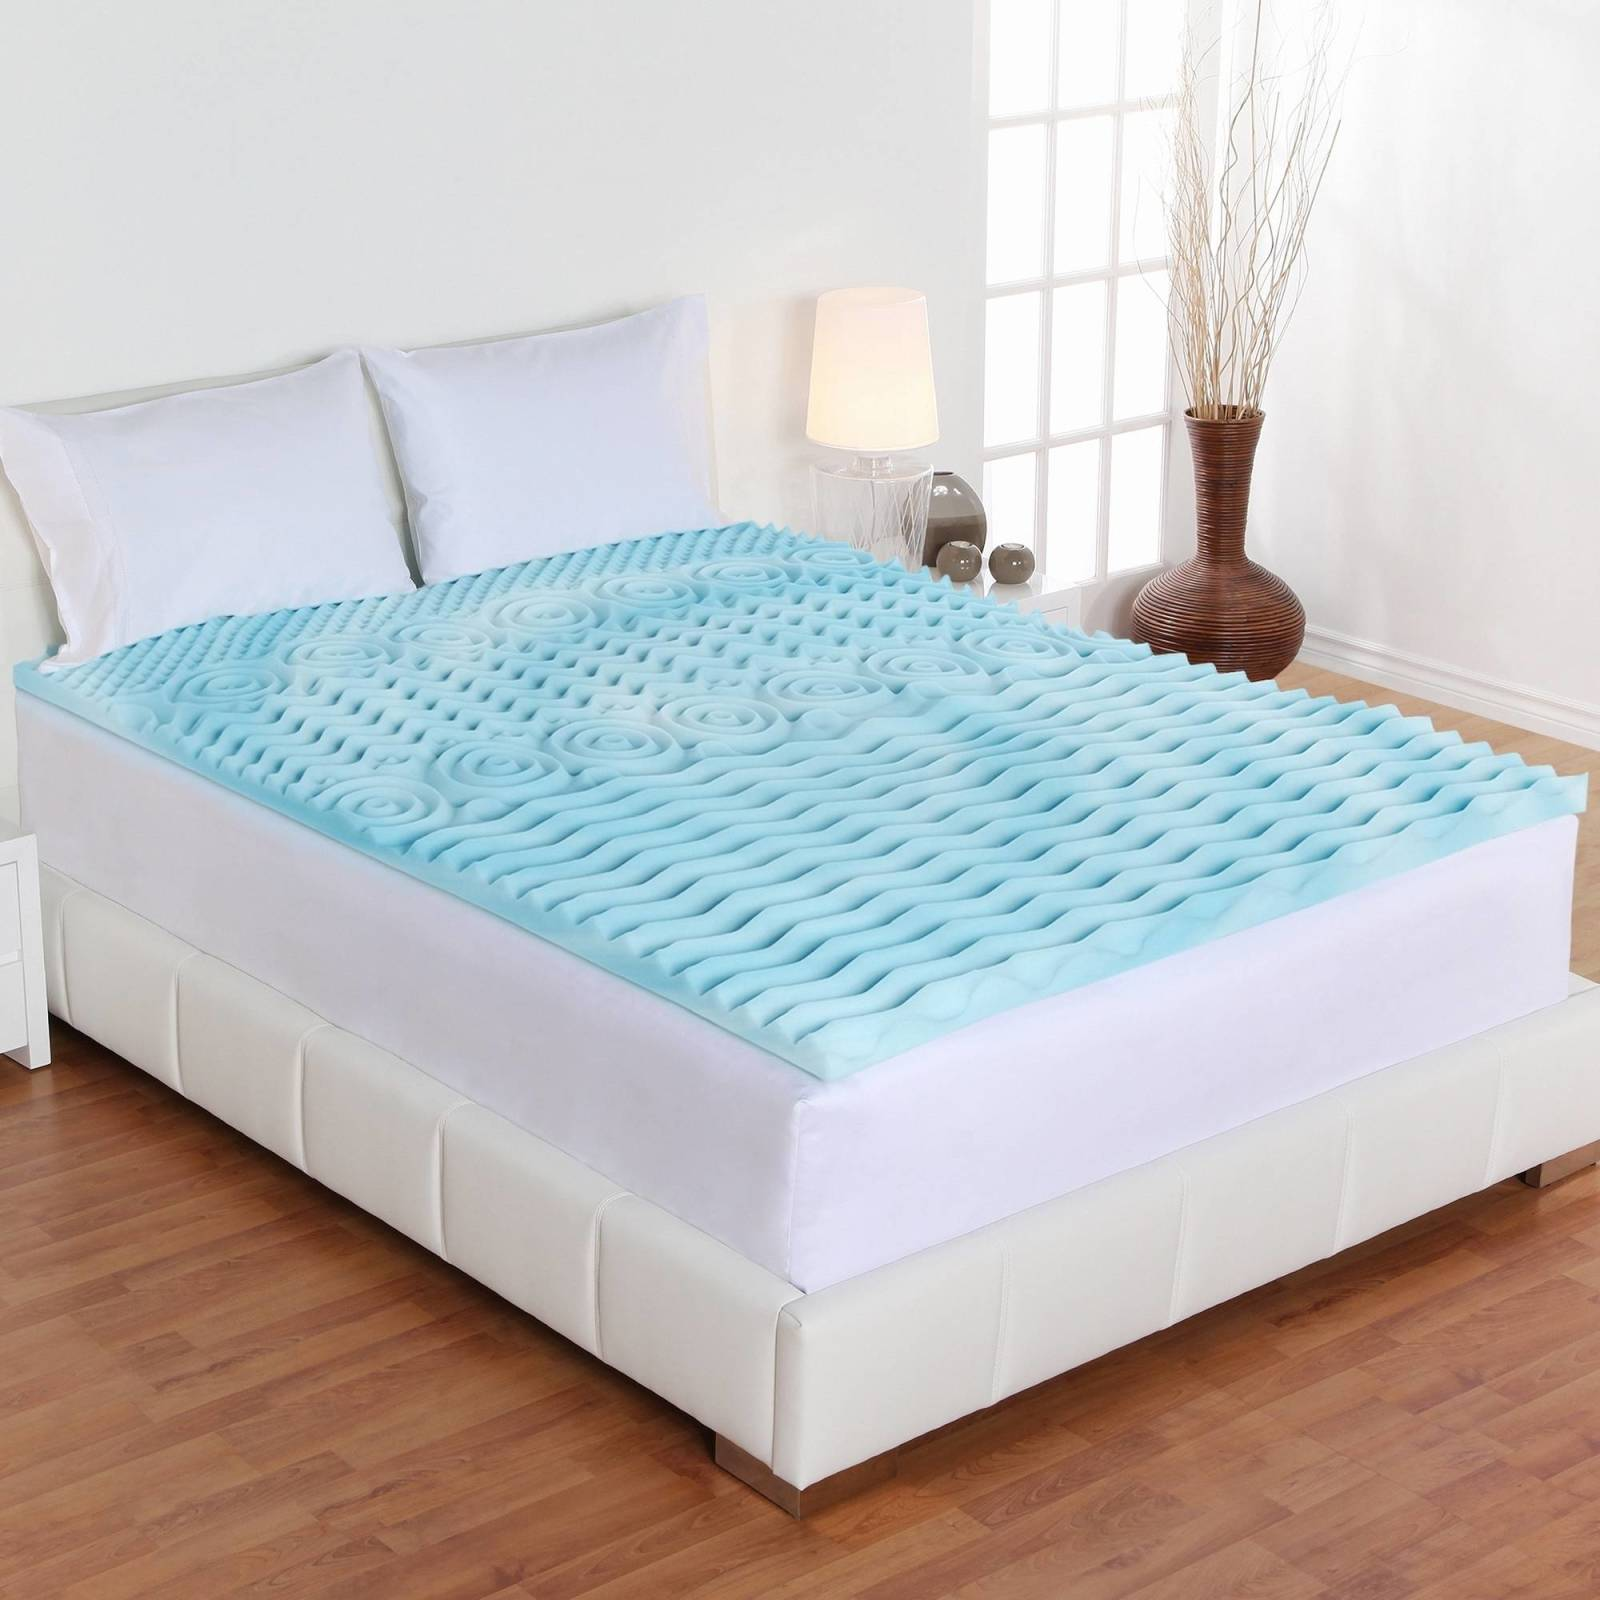 orthopedic memory foam mattress king size my home inspiration